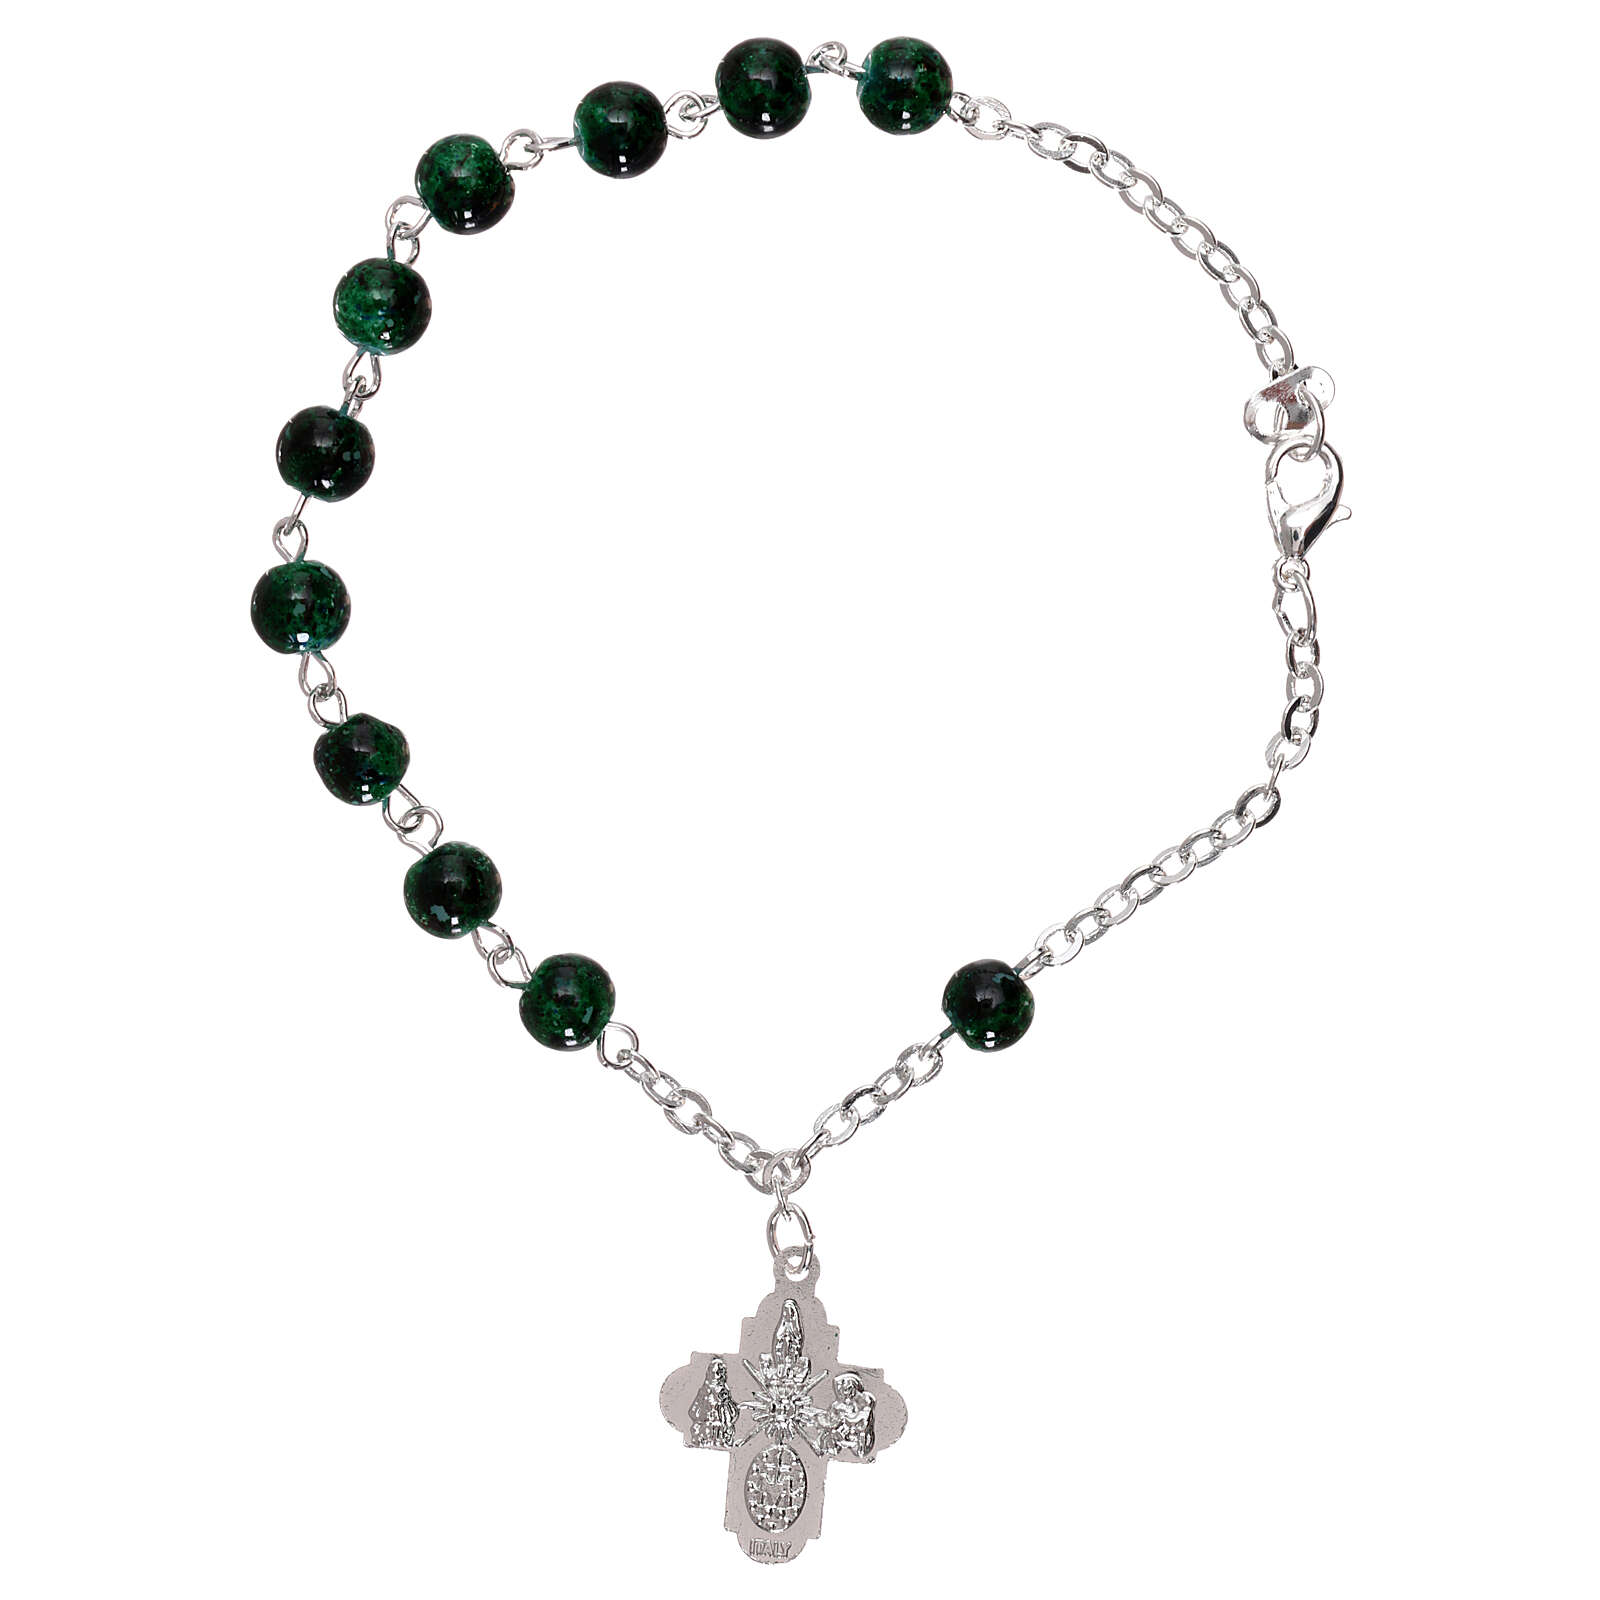 Single decade bracelet with lobster clasp glass green spotted beads 4 mm 4